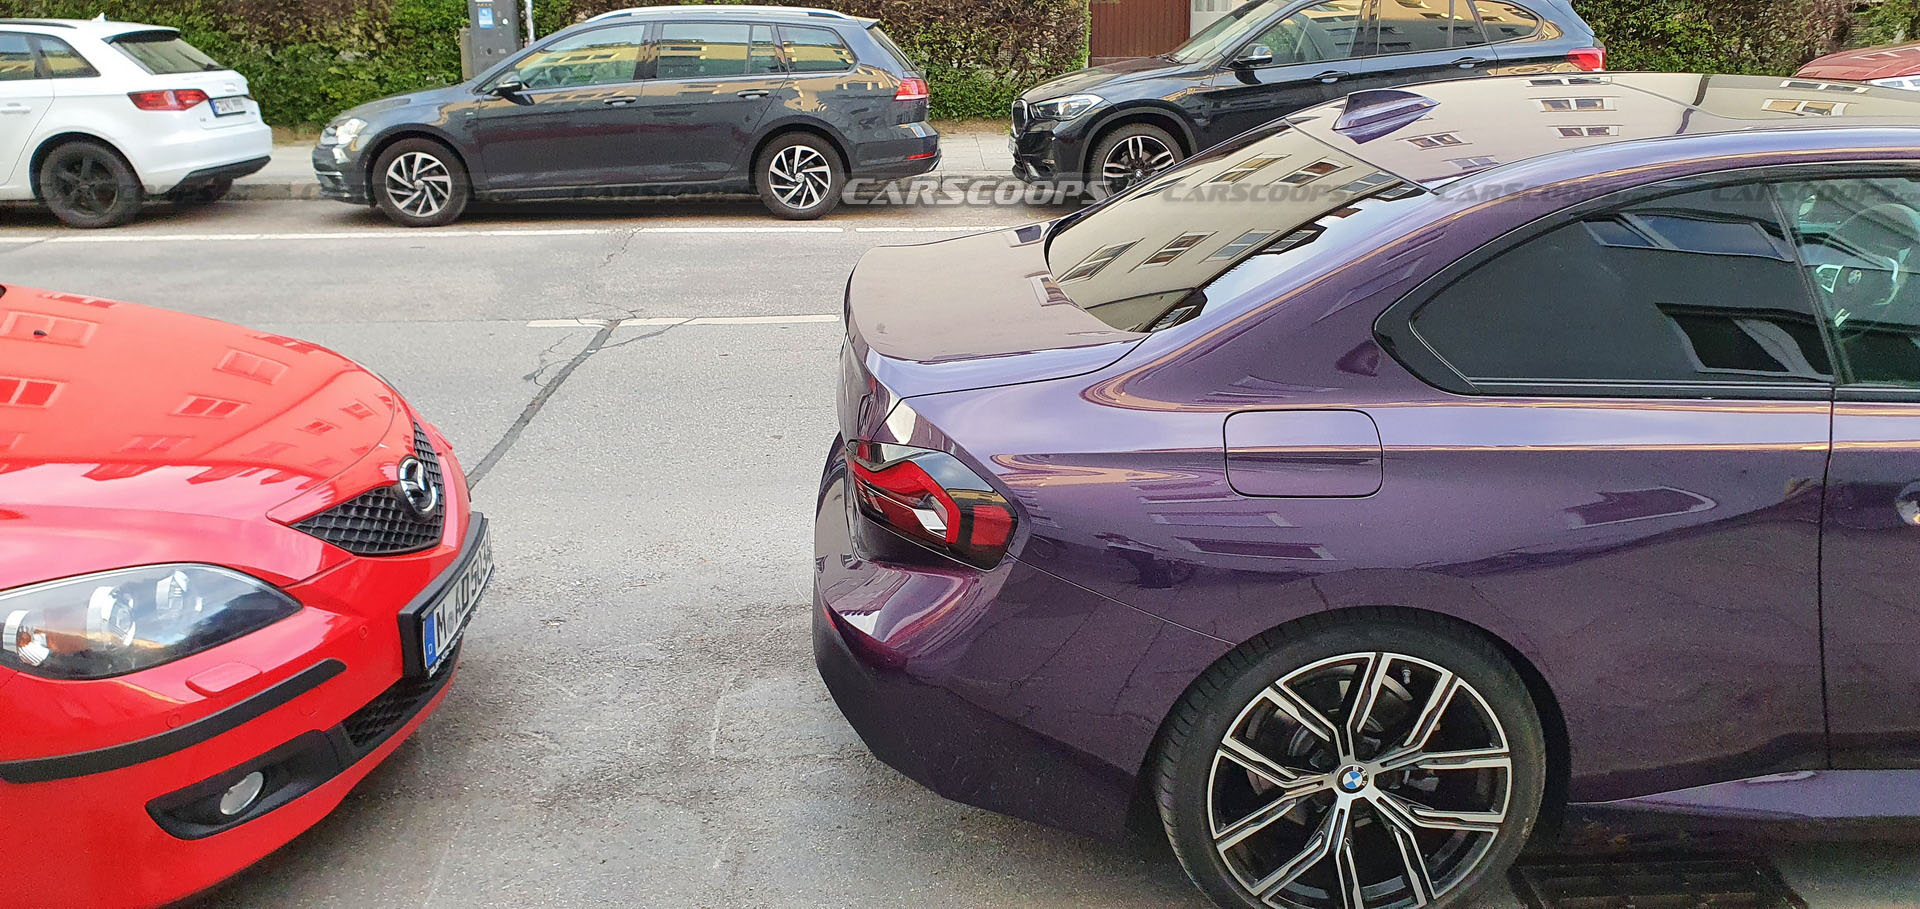 Name:  2022 BMW 2-Series G42 on the streets 4.jpg Views: 14607 Size:  419.5 KB